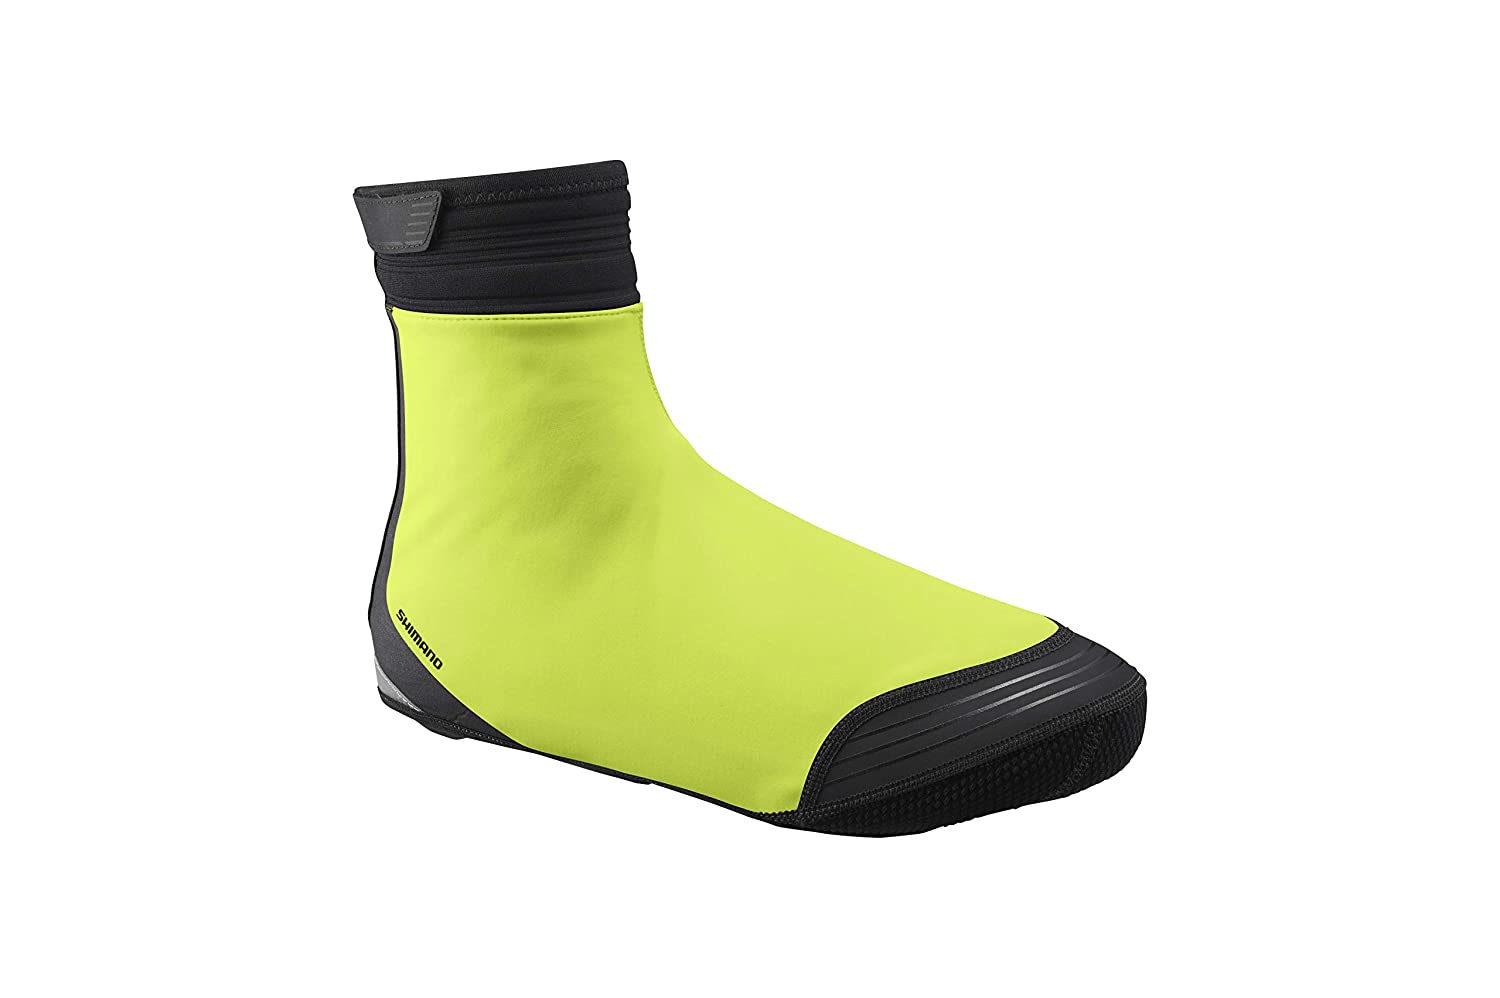 SHIMANO S1100X Soft Shell Shoe Cover, Neon Yellow, XL (Shoe Size 44-47)